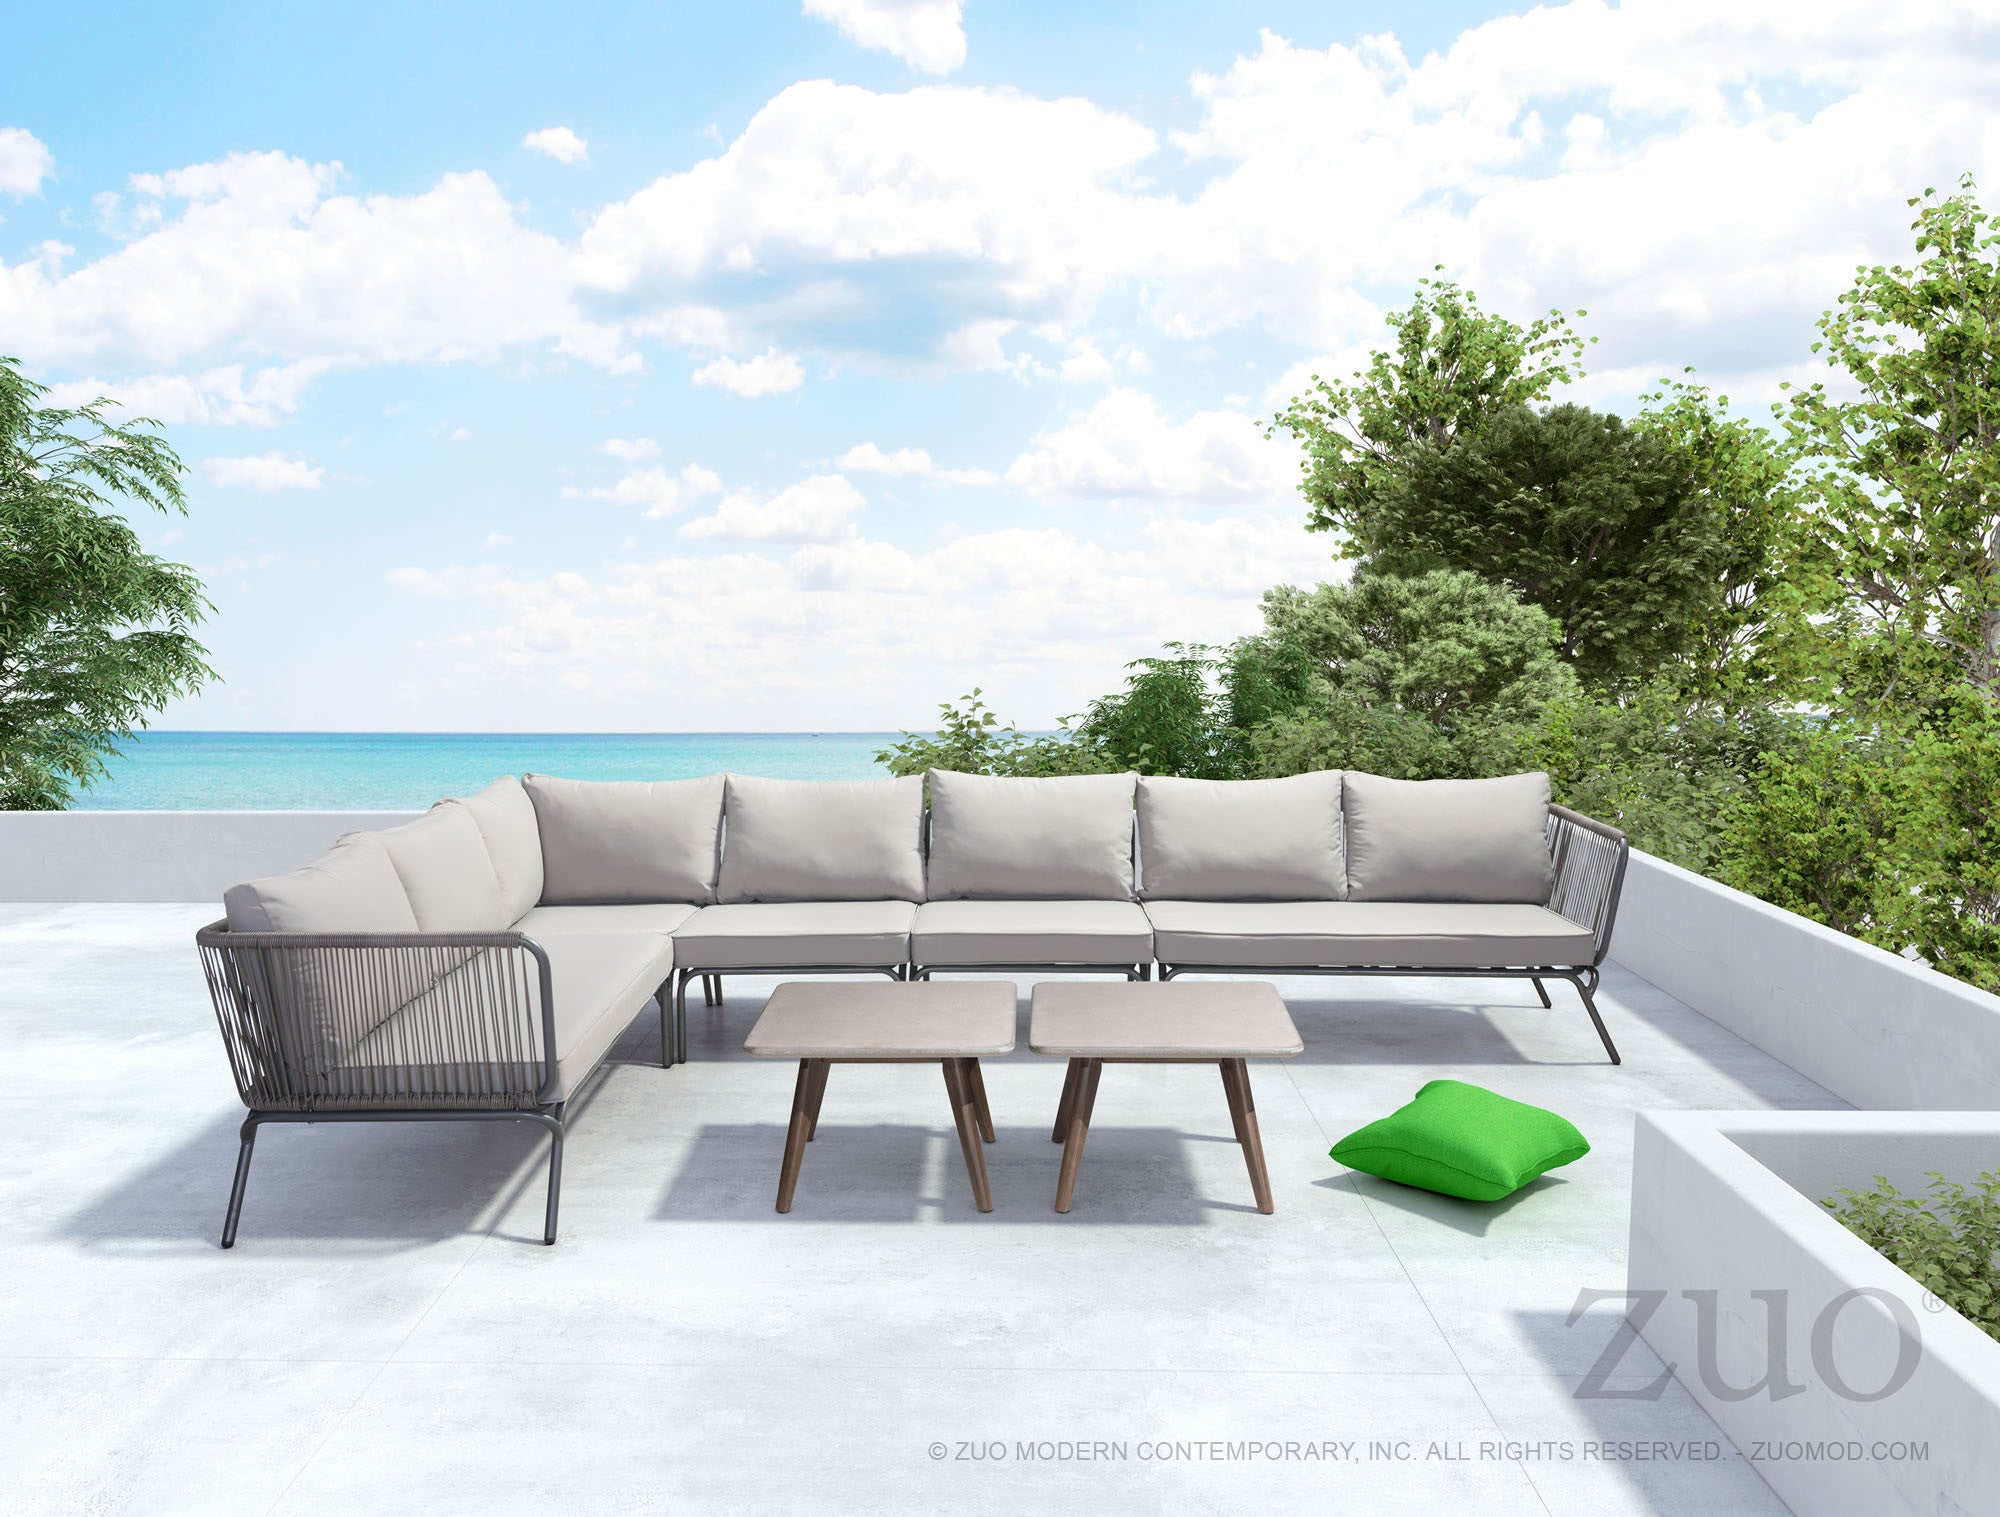 Pier Outdoor Single Corner Sectional Sofa Unit in Gray Aluminum & Fabr